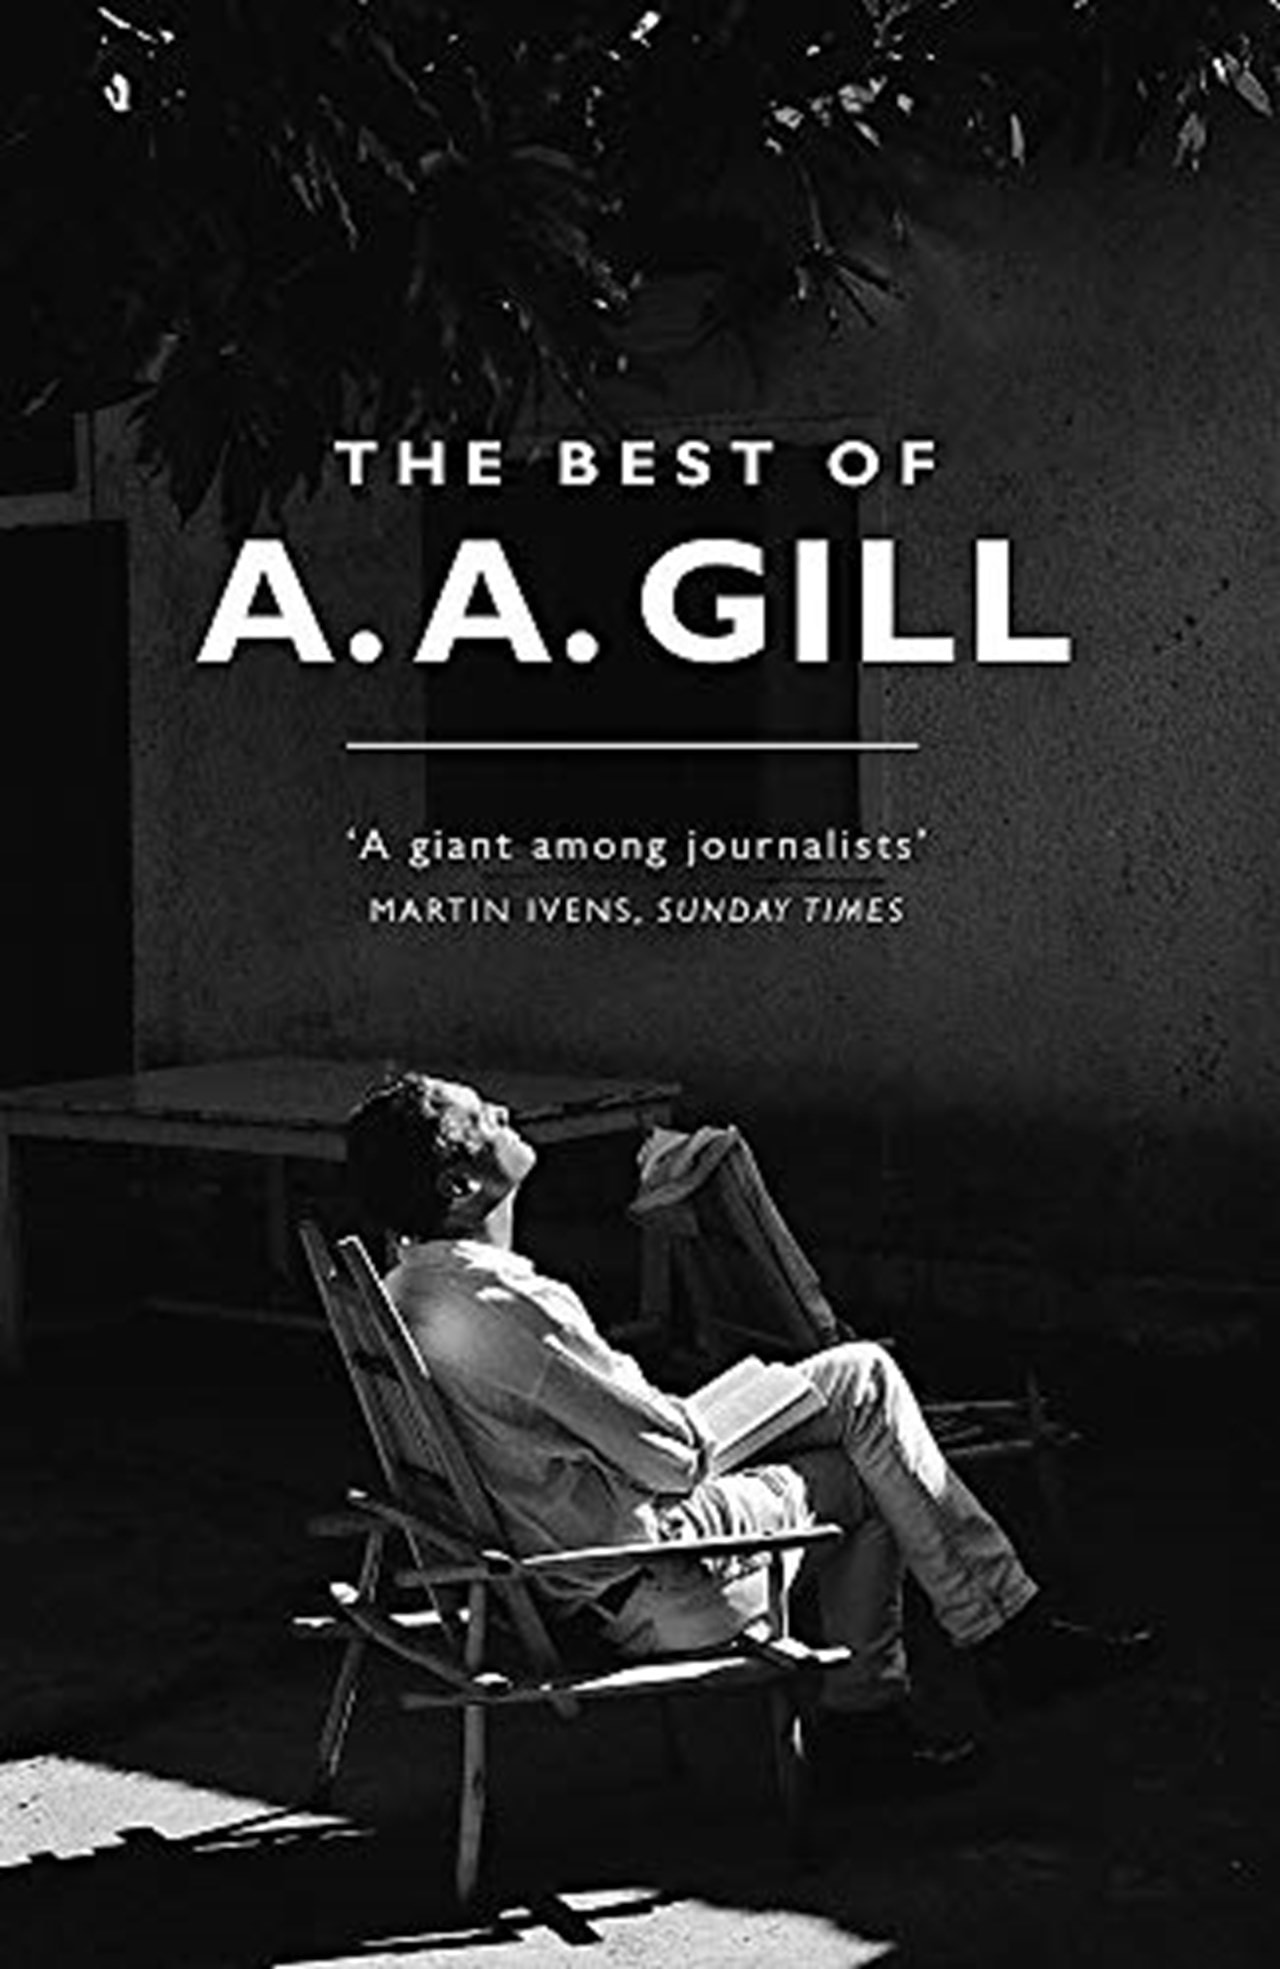 The Best of A.A. Gill - 1